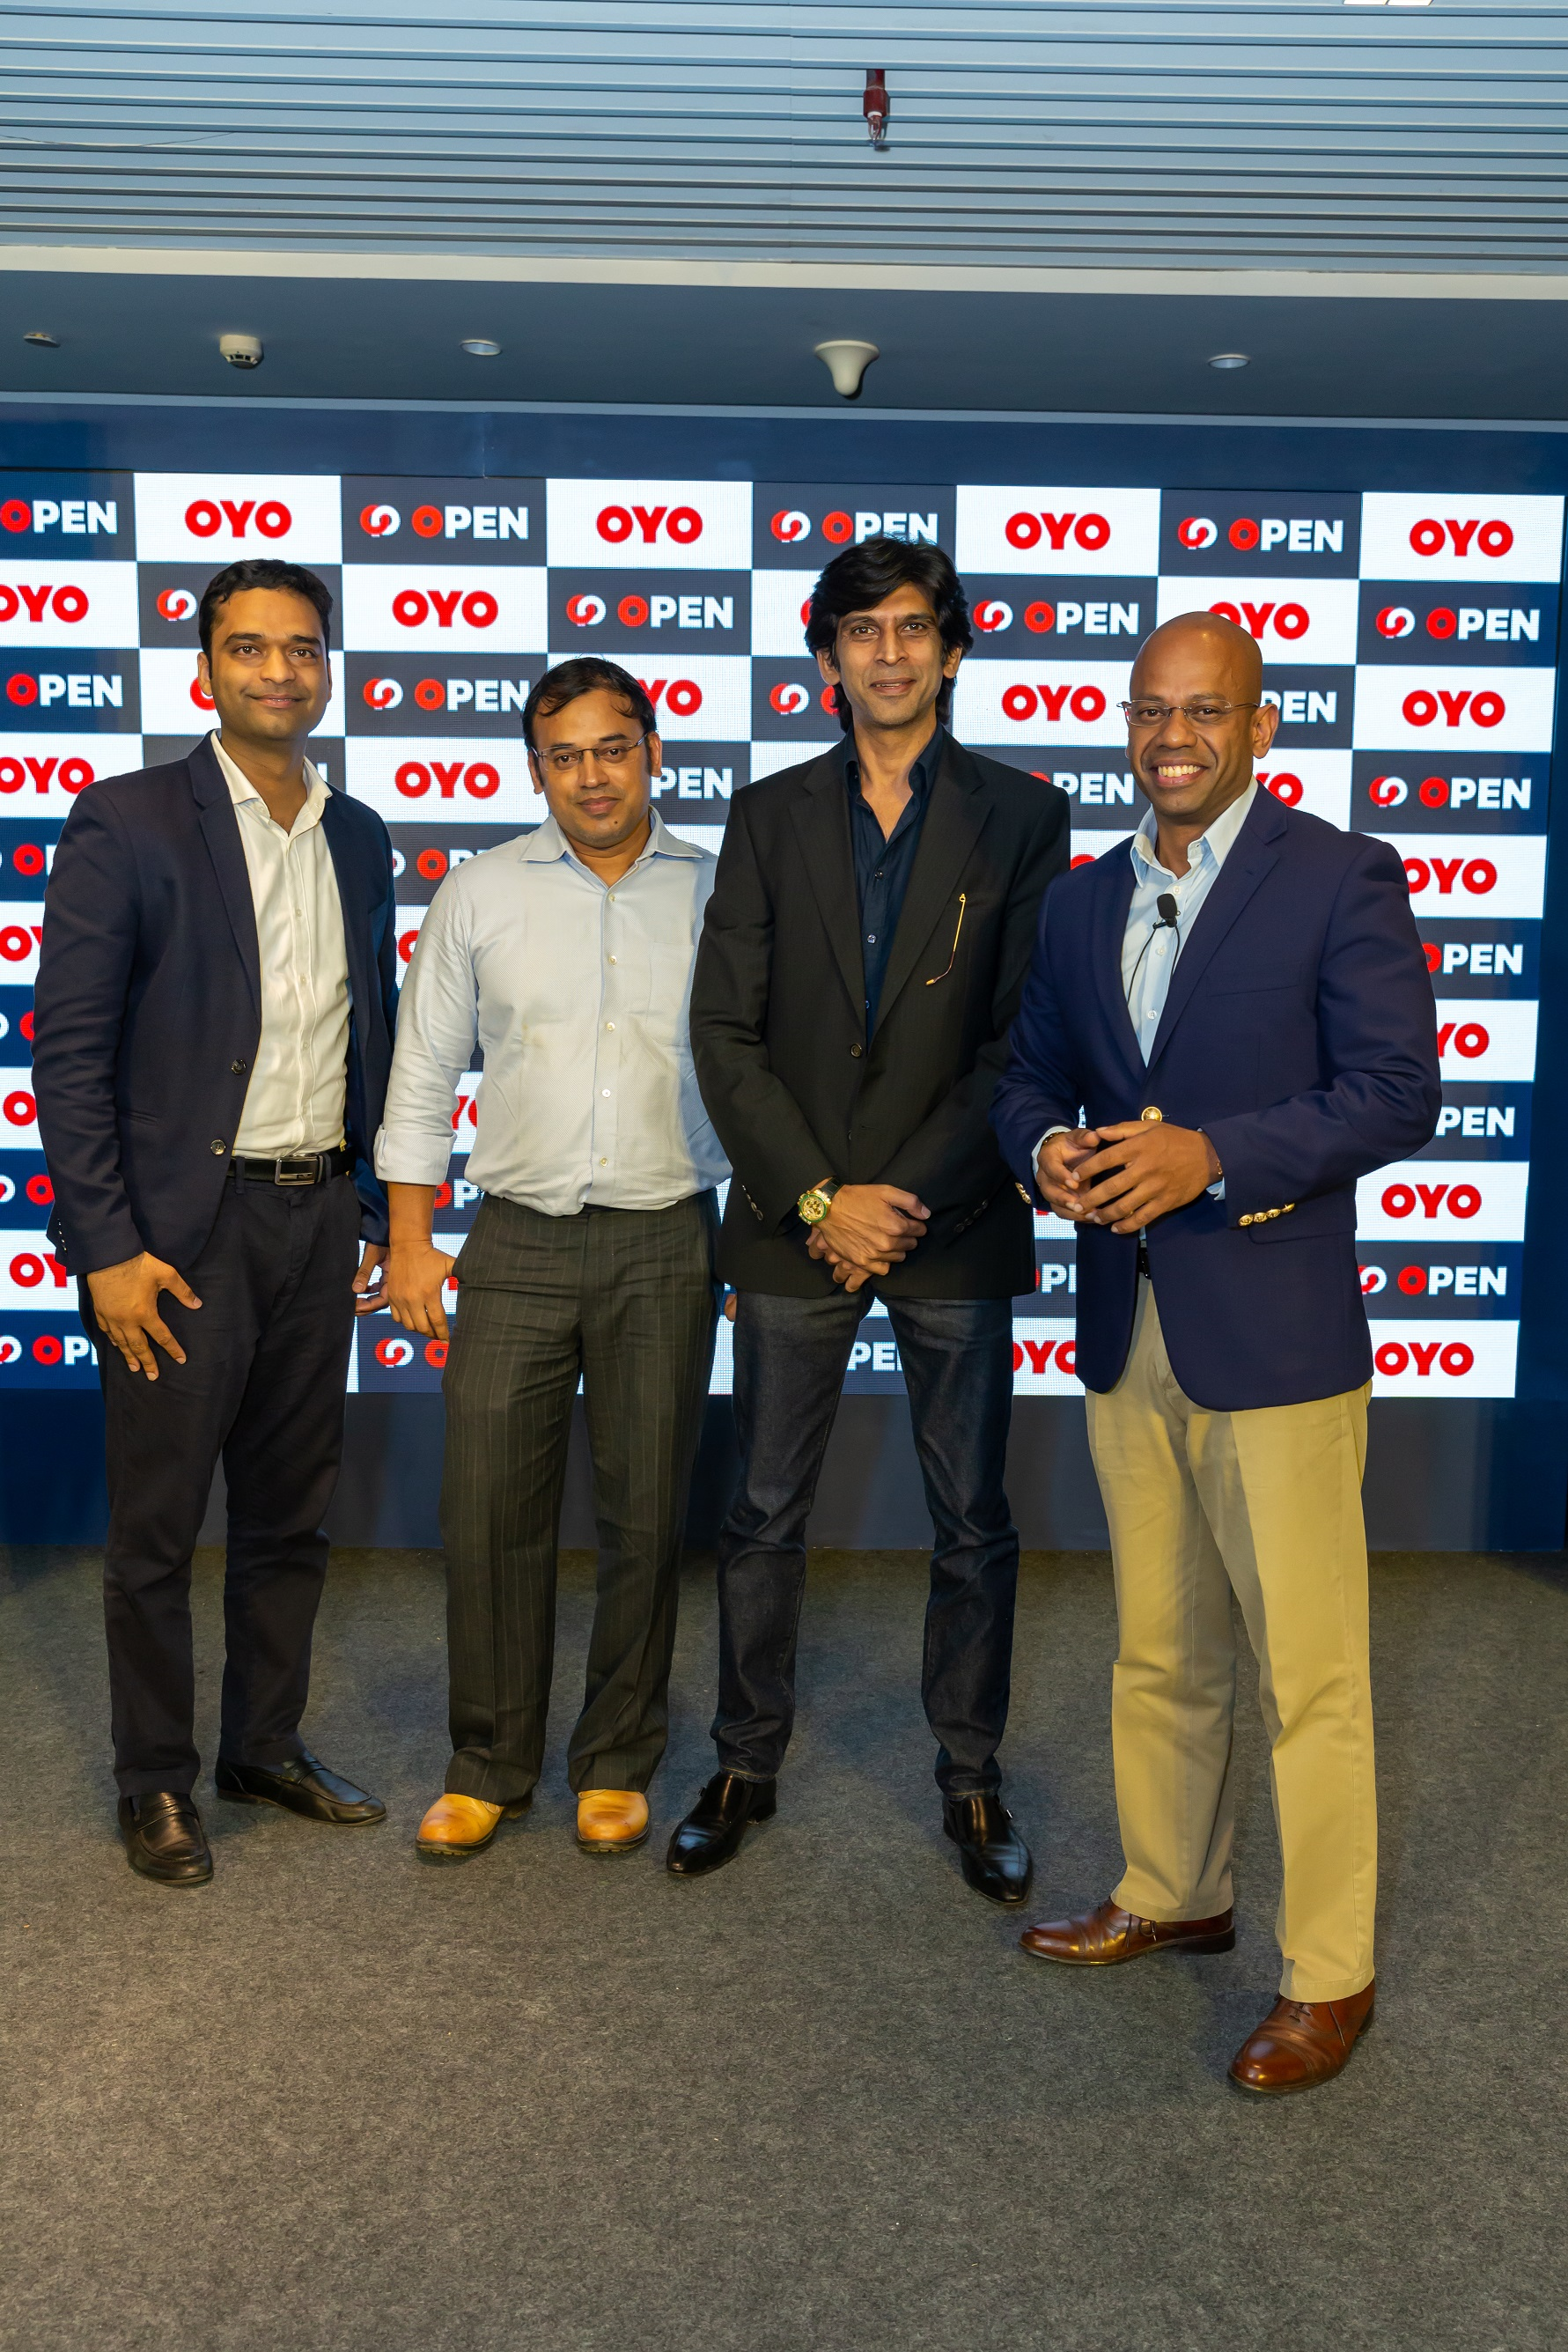 L to R - Mr Ayush Mathur, Chief Supply Officer at OYO Hotels & Homes, M...